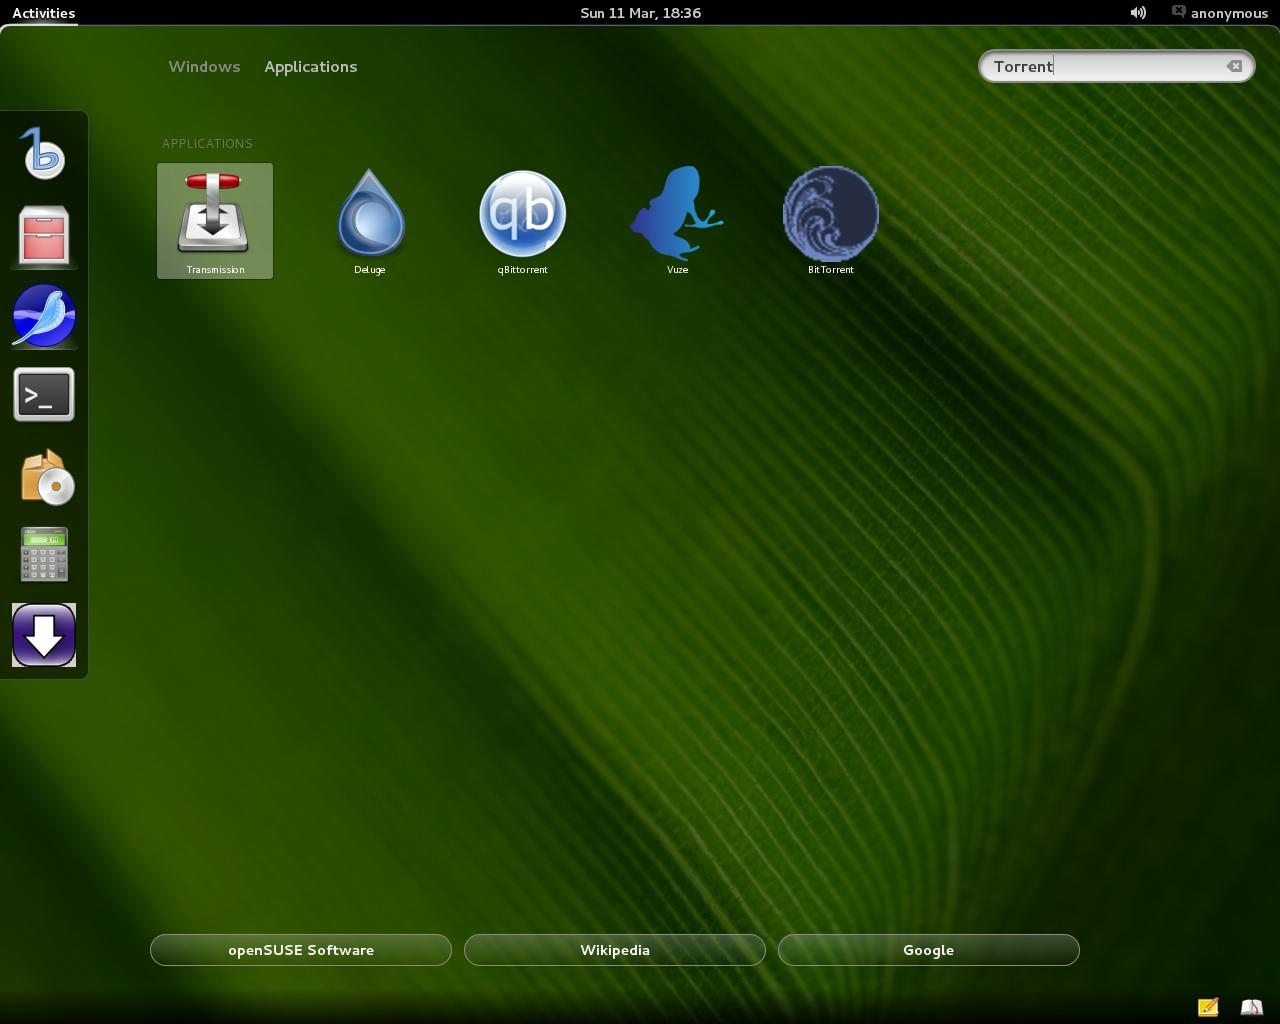 Opensuse Torrents Download